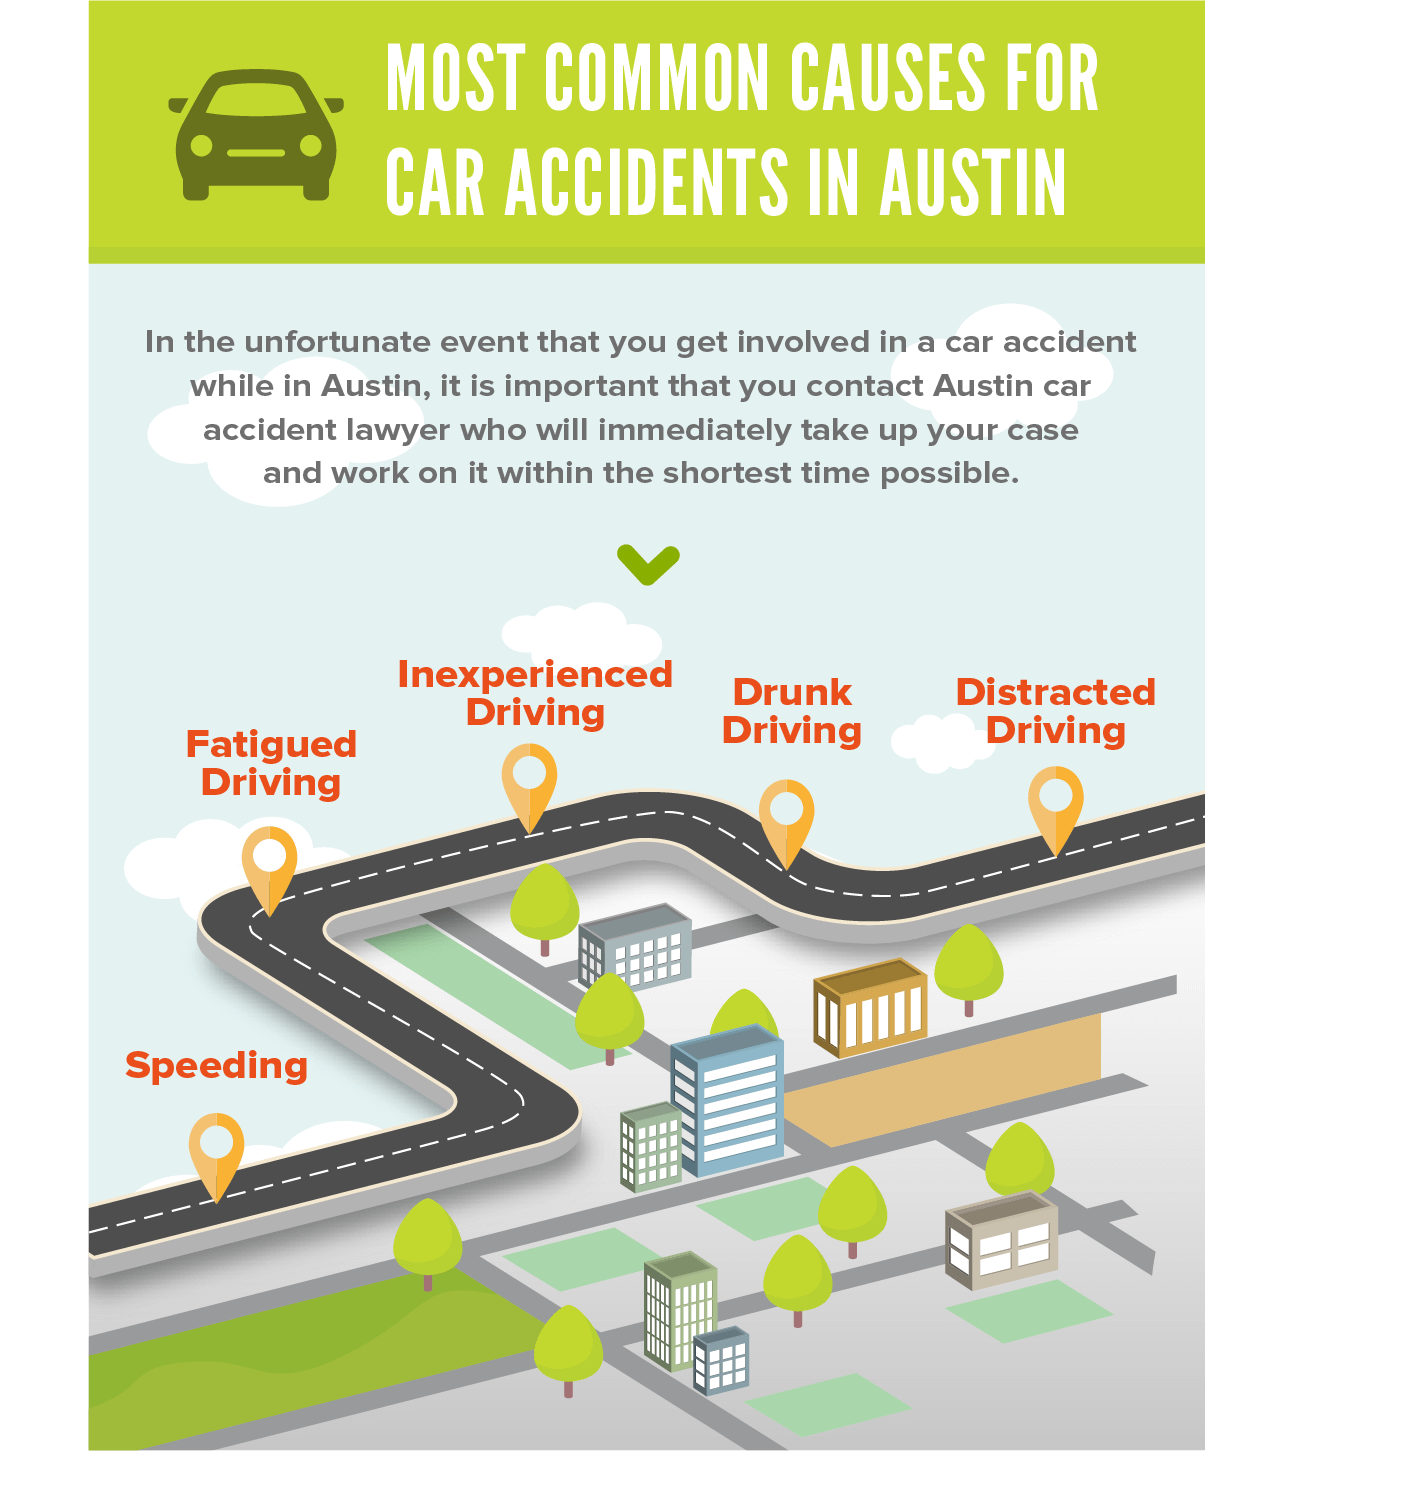 Infographic of the most common causes for a car accident which include speeding, fatigue, inexperienced driving, drunk driving, and distracted driving.